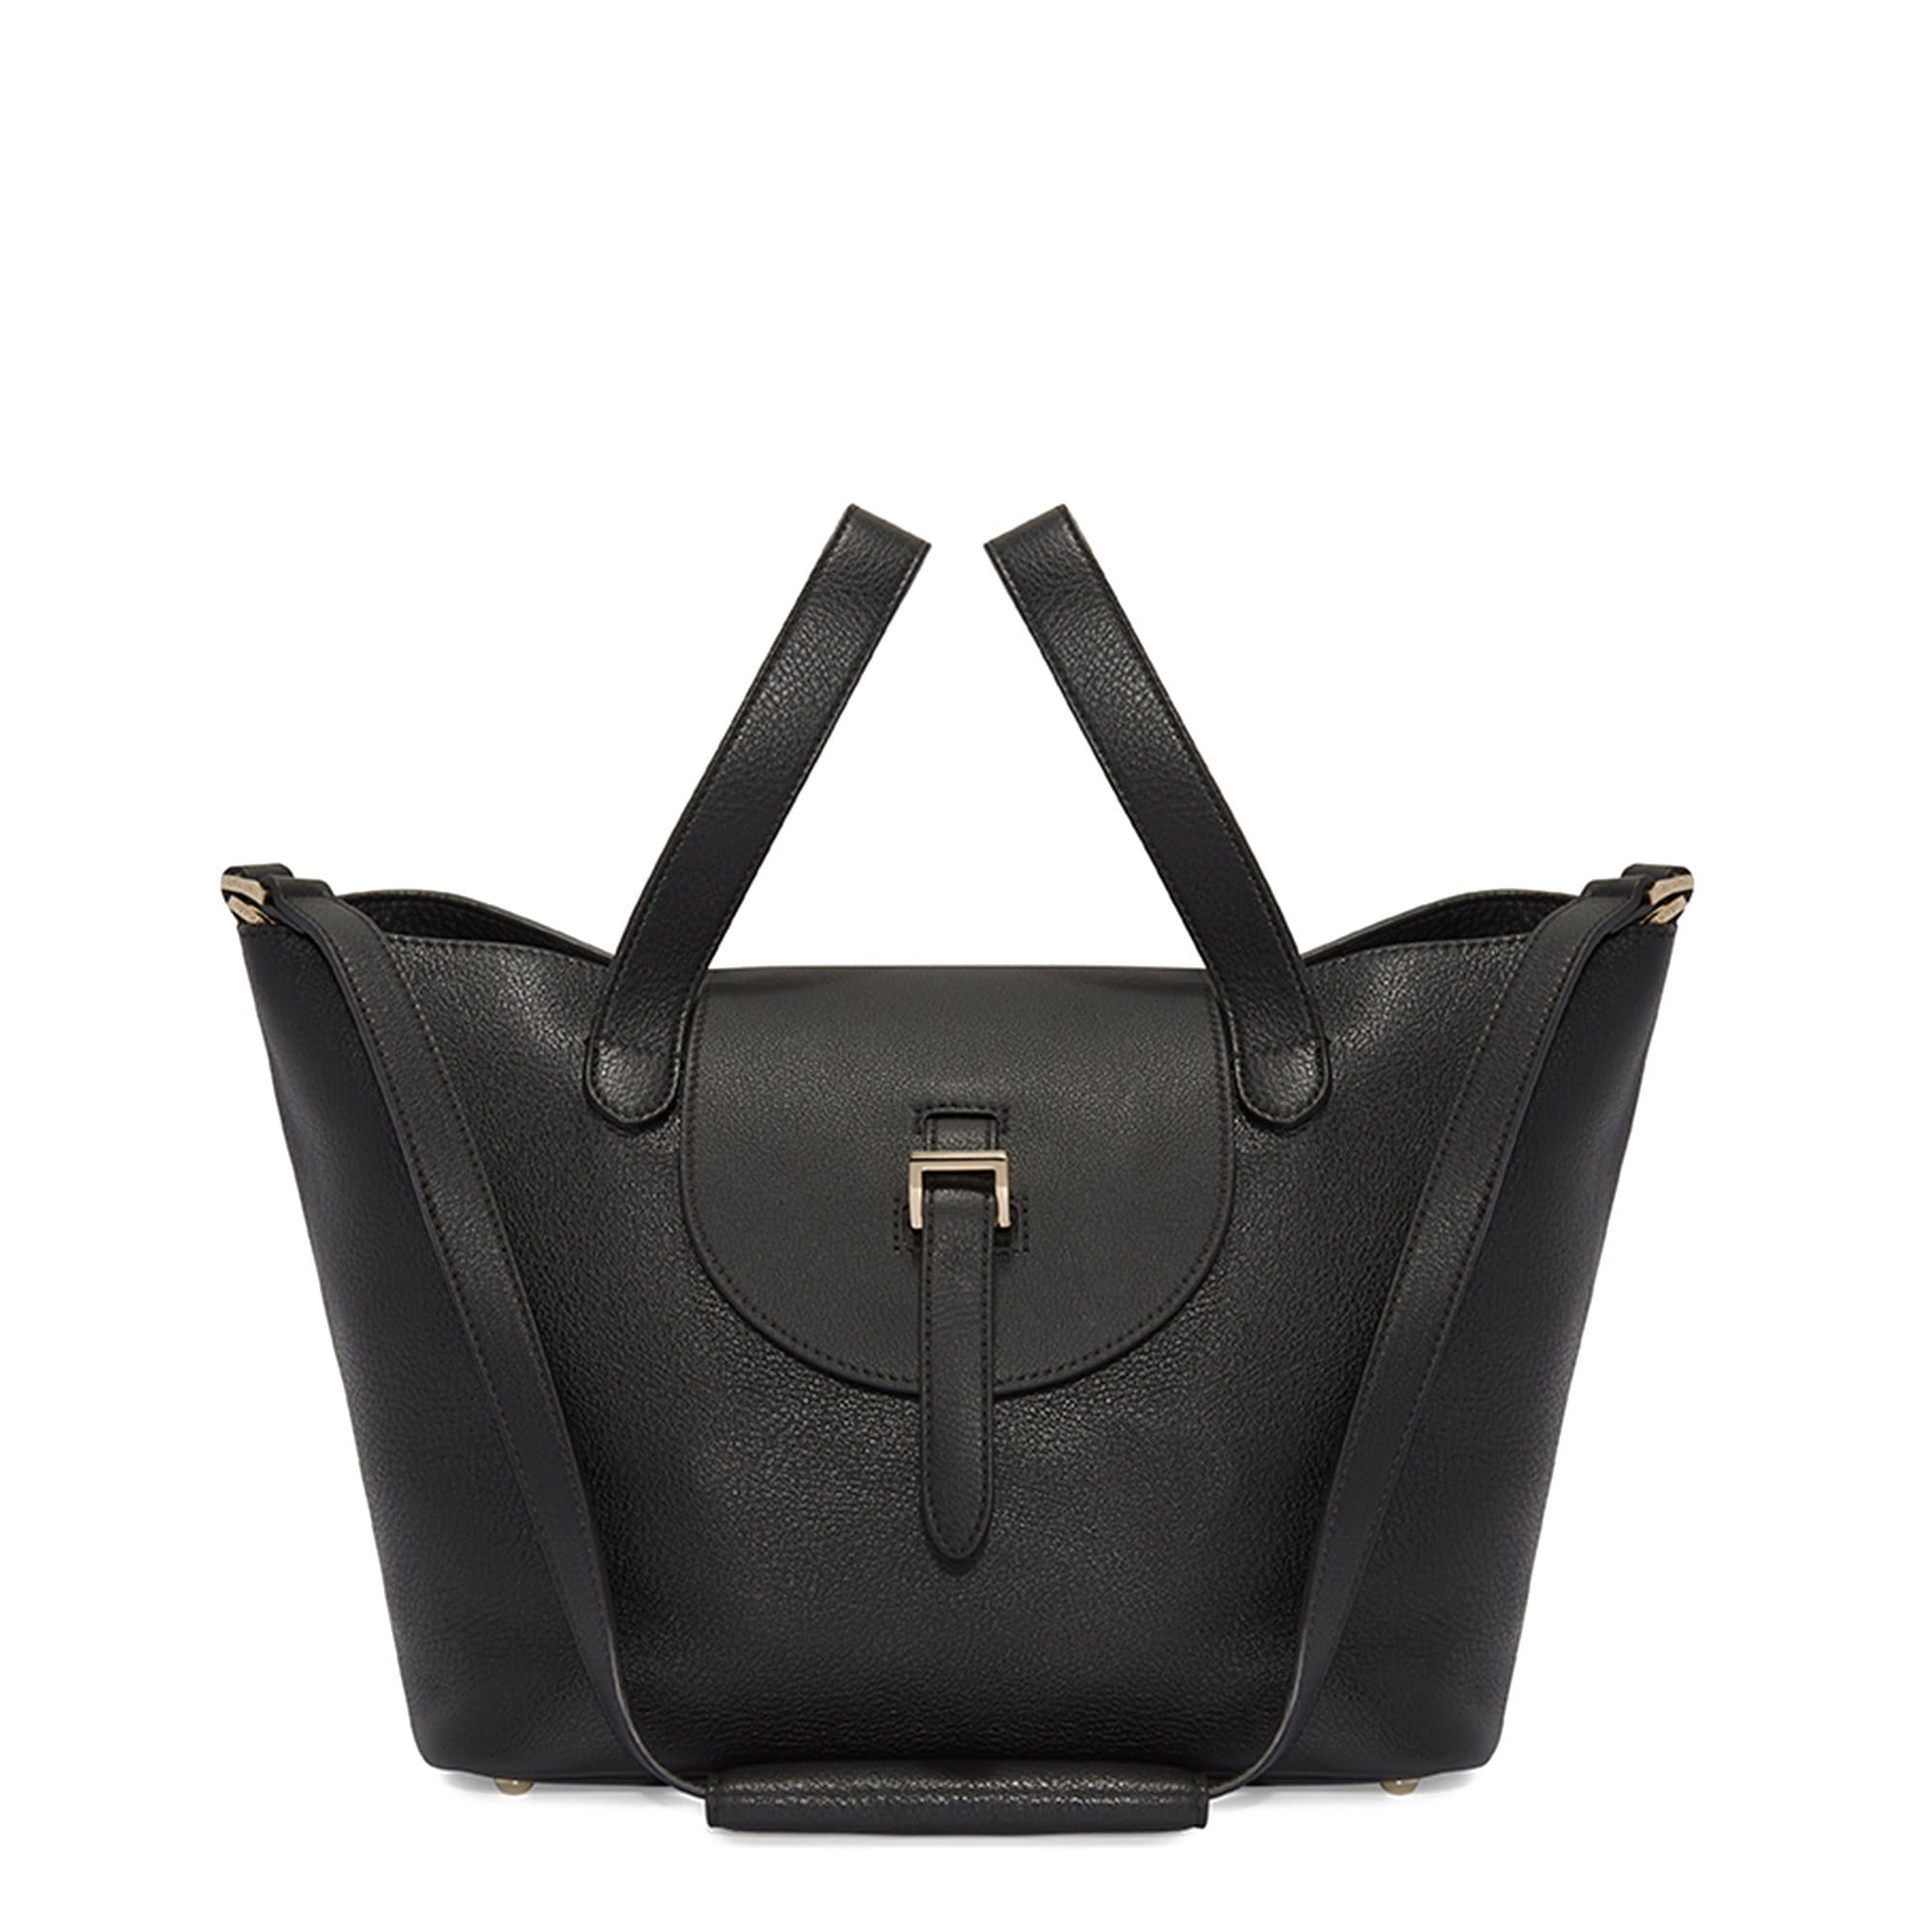 Thela Medium | Tote Bag | Zipper Black